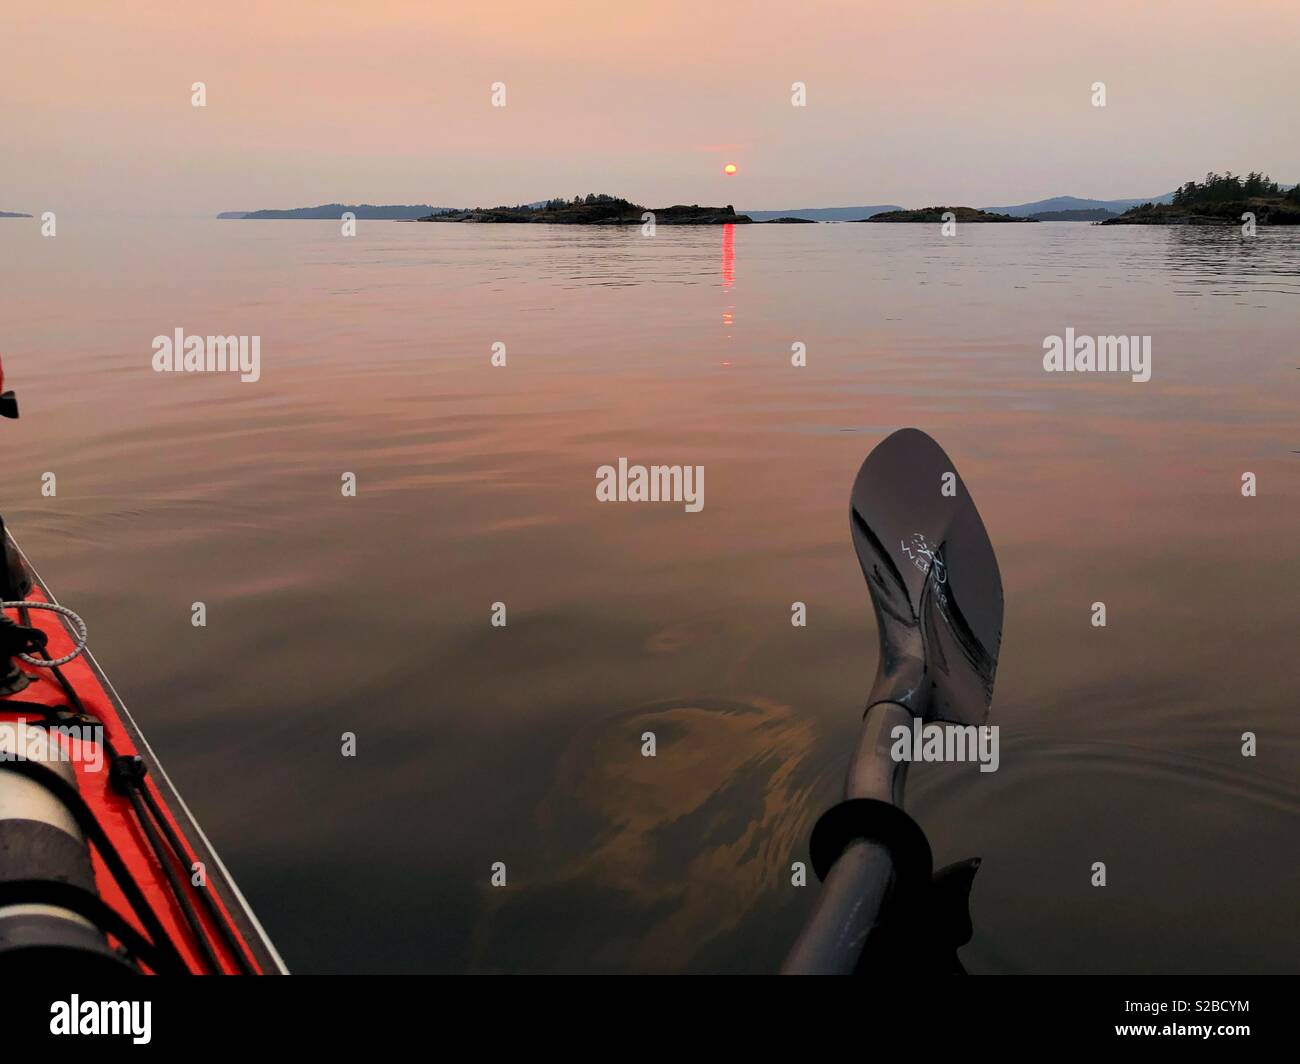 Kayaking at Unsettling sunset at Desolation Sound during summer forest fires in BC - Stock Image